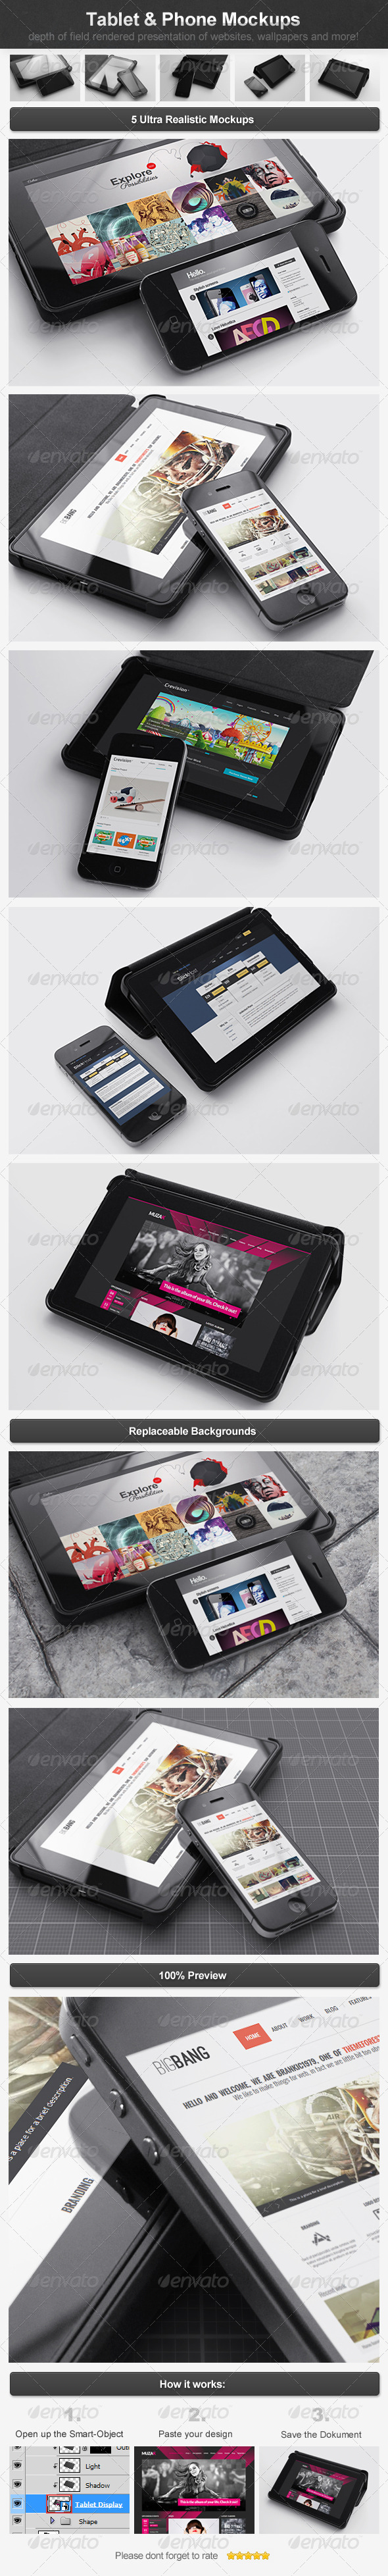 Tablet & Phone Mockups - Multiple Displays